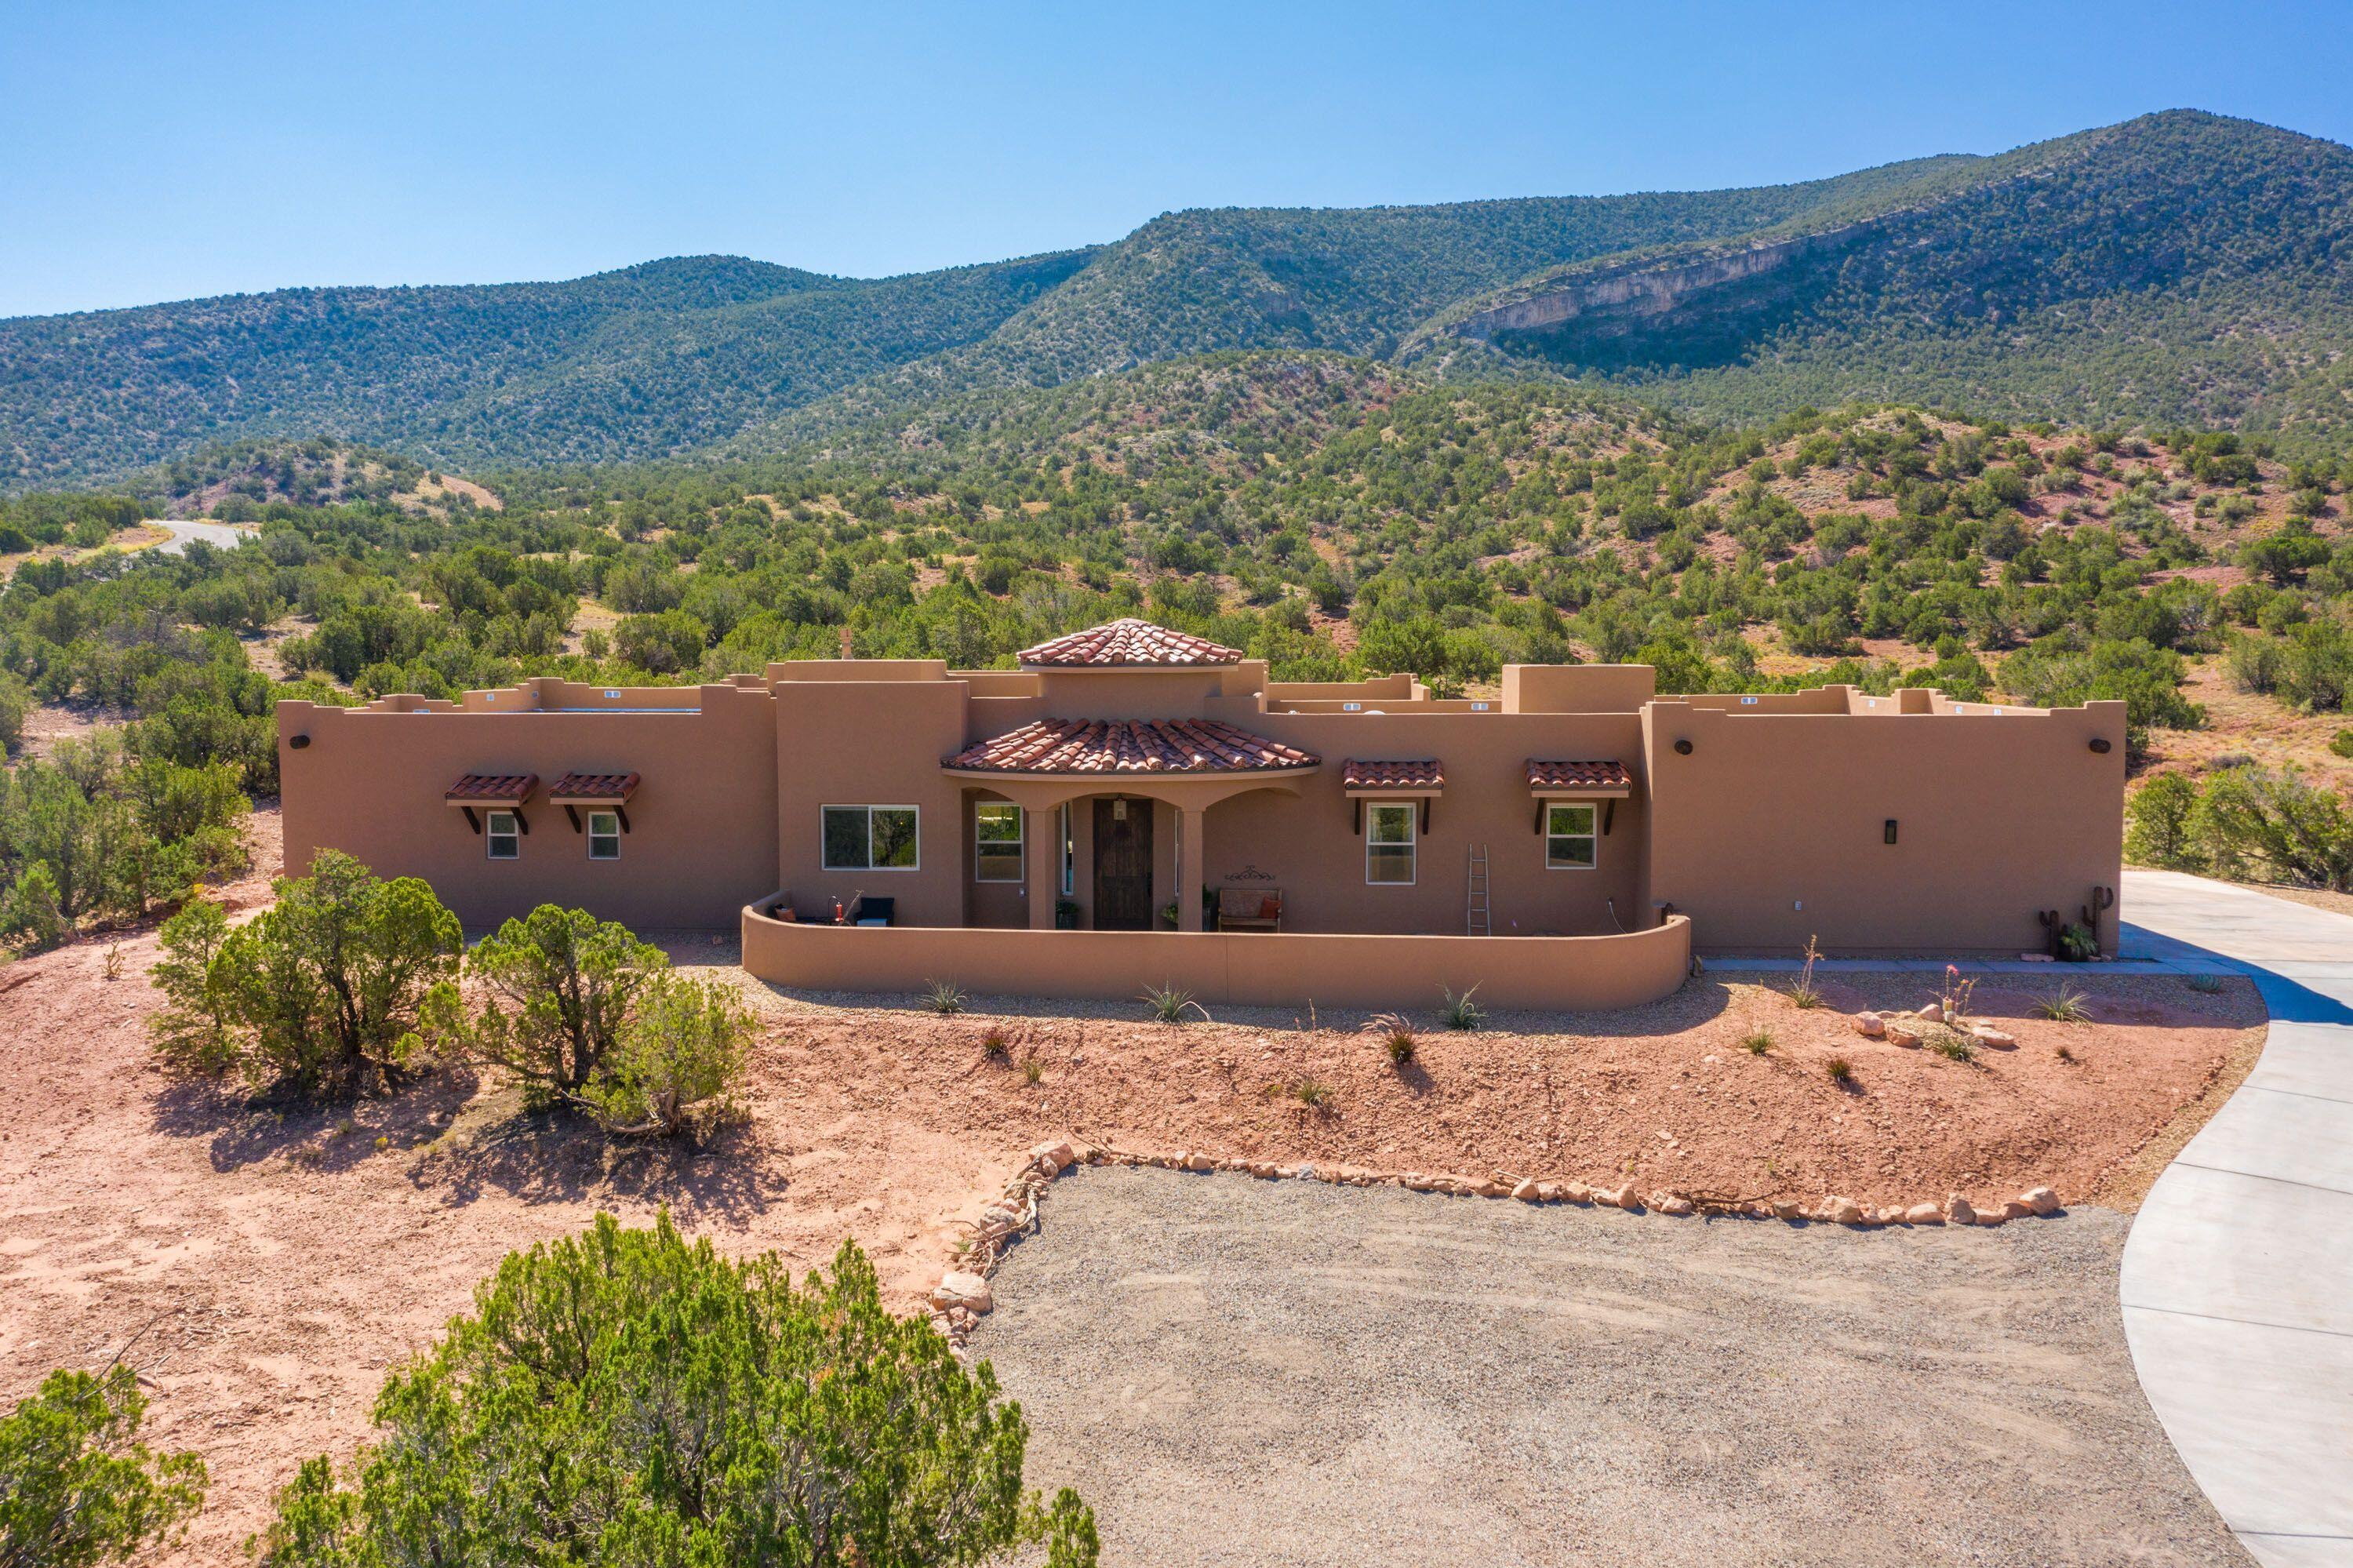 Exquisite Custom Home with Spectacular VIEWS! This stunning impeccable modern day build with old world interior style features an open floor plan, spacious Kitchen open to the expansive Living and Dining rooms. Perfectly situated on 3 Lush Acres to capture Sandia Mountain & Jemez Mountain Views. This custom designed newer home built in 2020 is sure to make an impression. The grand entrance includes an artful hand-blown glass chandelier. Soaring ceilings, wood beams, porcelain tile flooring (no carpet!), custom cabinetry matched throughout the home. Huge windows to take in the views from every room. Kitchen features custom cabinetry, ''leather finish'' granite countertops, large center eat-at island, Frigidaire Cafe series in charcoal matte finish 5 burner gas cooktop & custom vent hood.